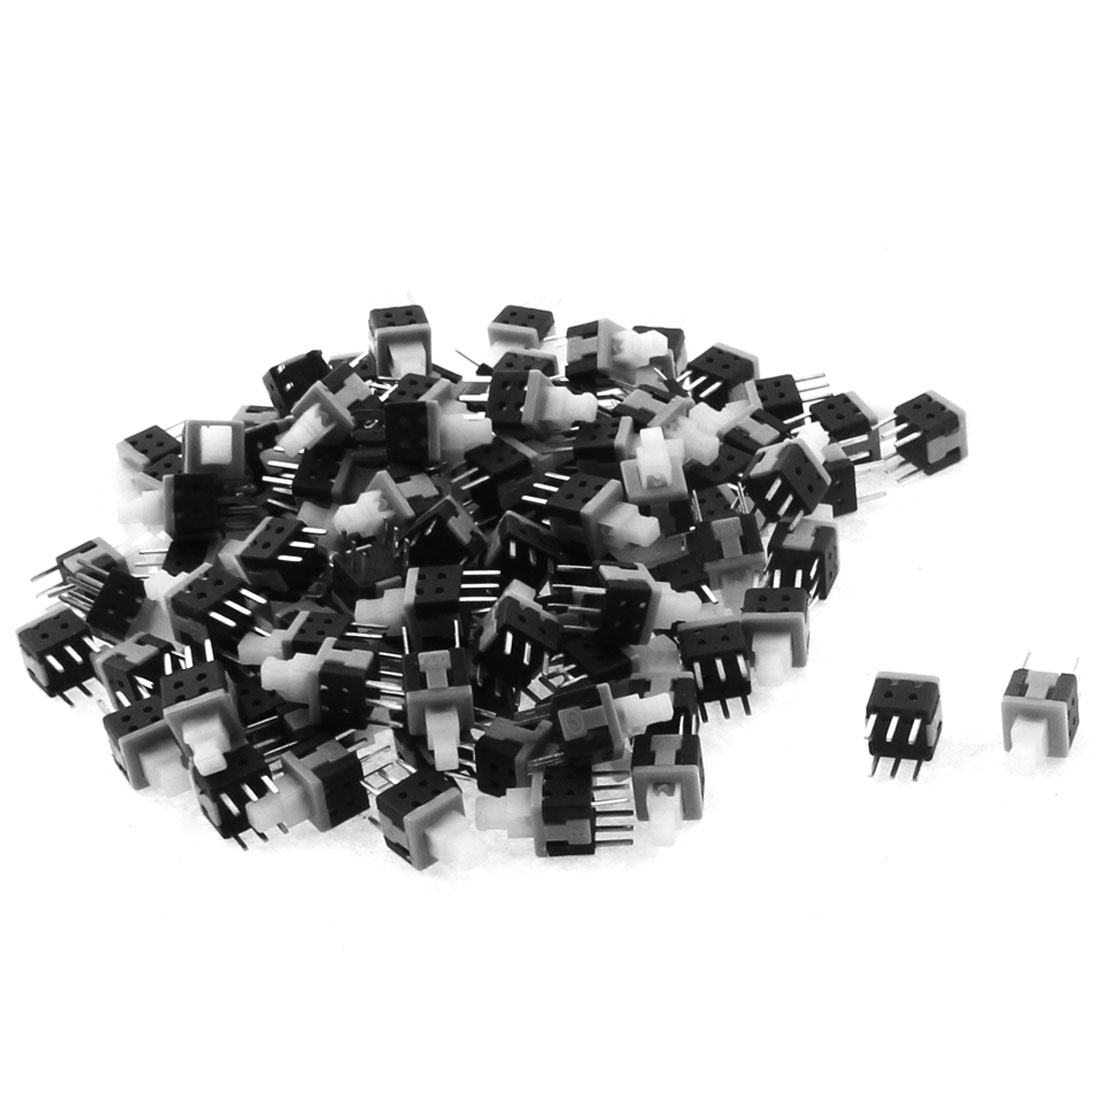 100PCS 6 Terminals Push Button Latching Action Tactile Switches